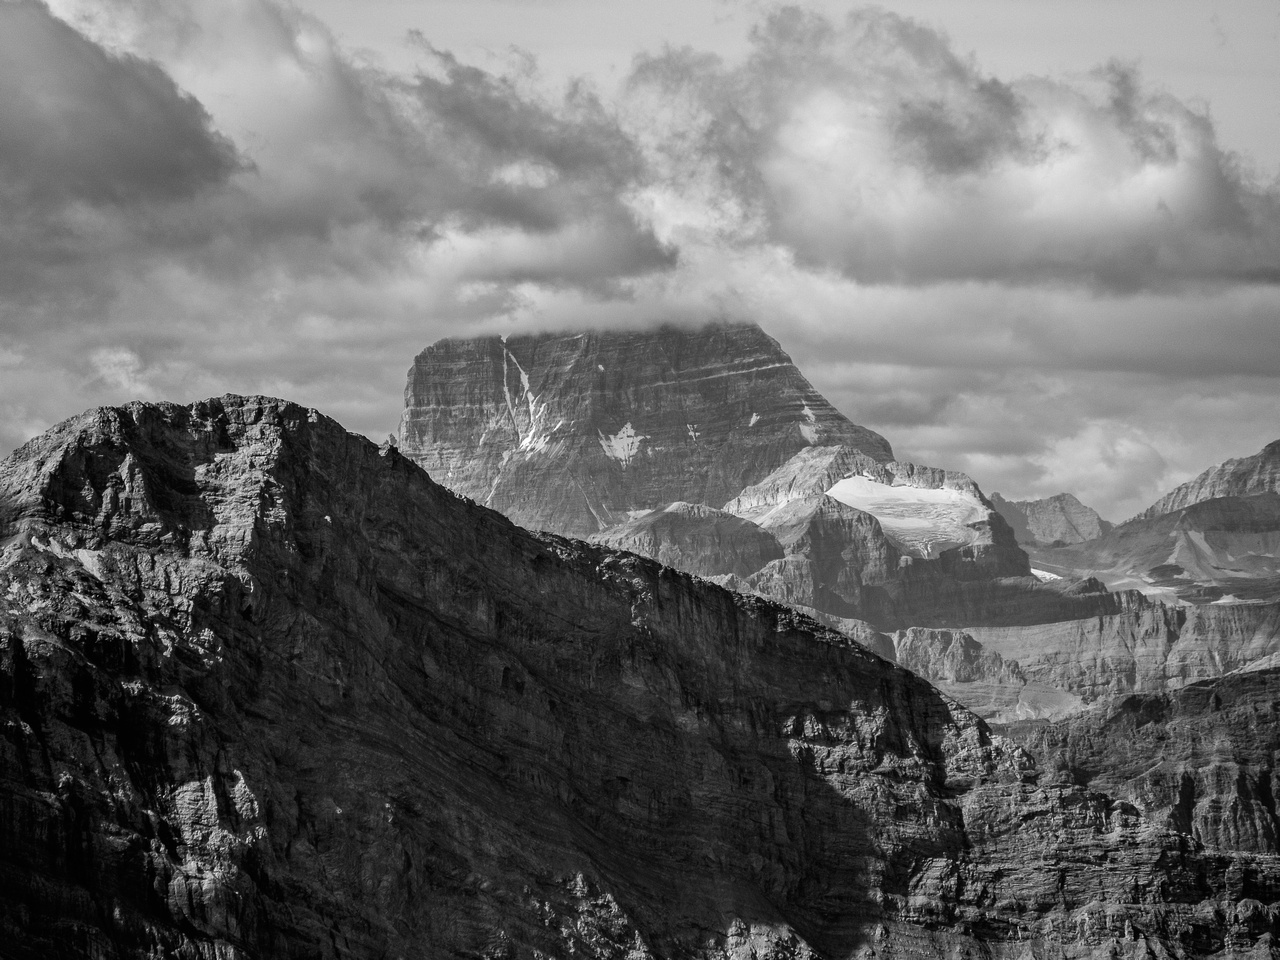 Instead of buried in smoke, Mount Assiniboine is now buried in clouds.